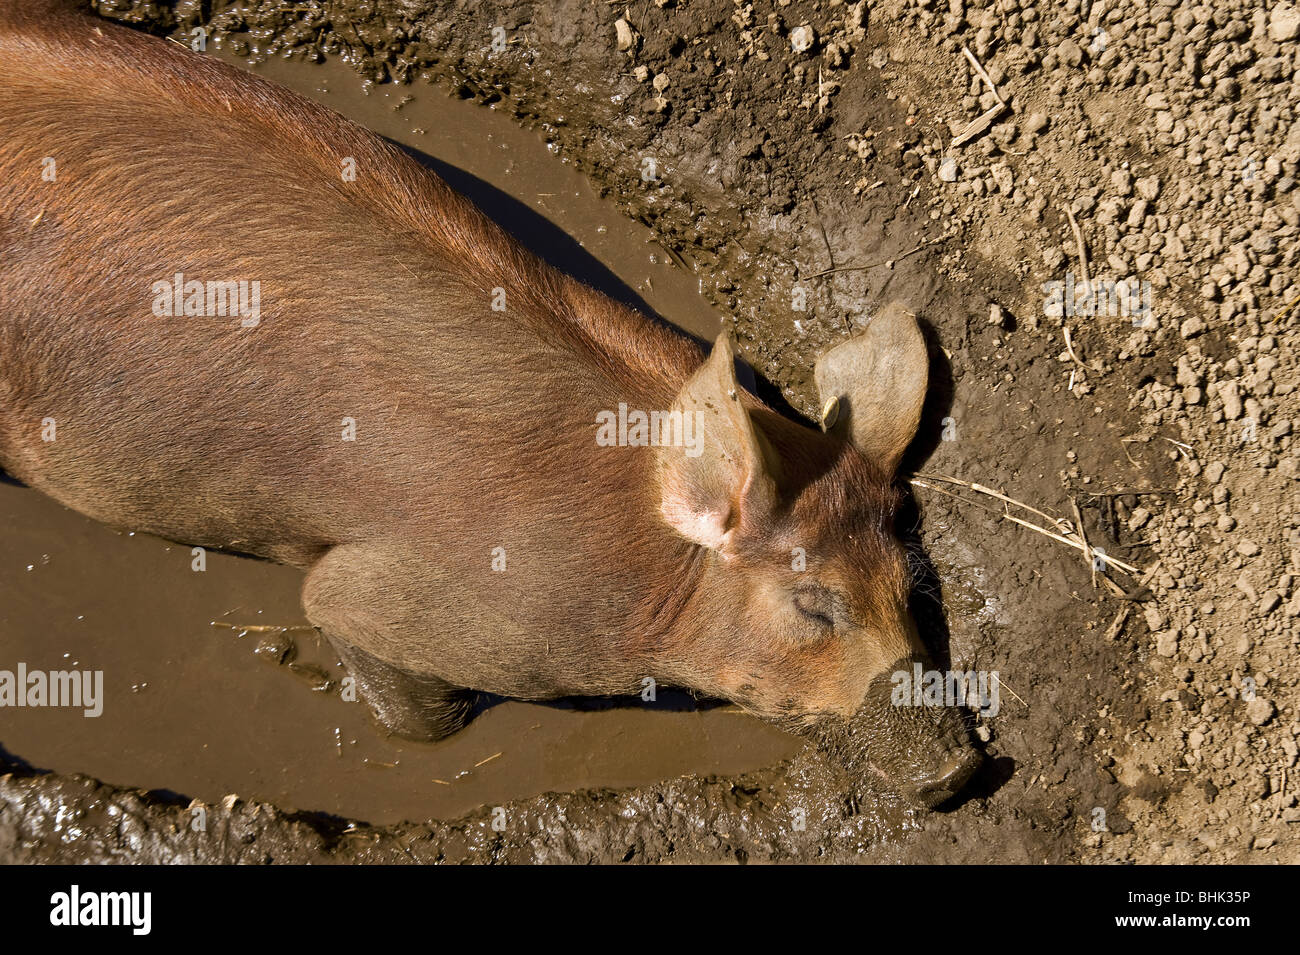 A pig sleeping in a puddle - Stock Image